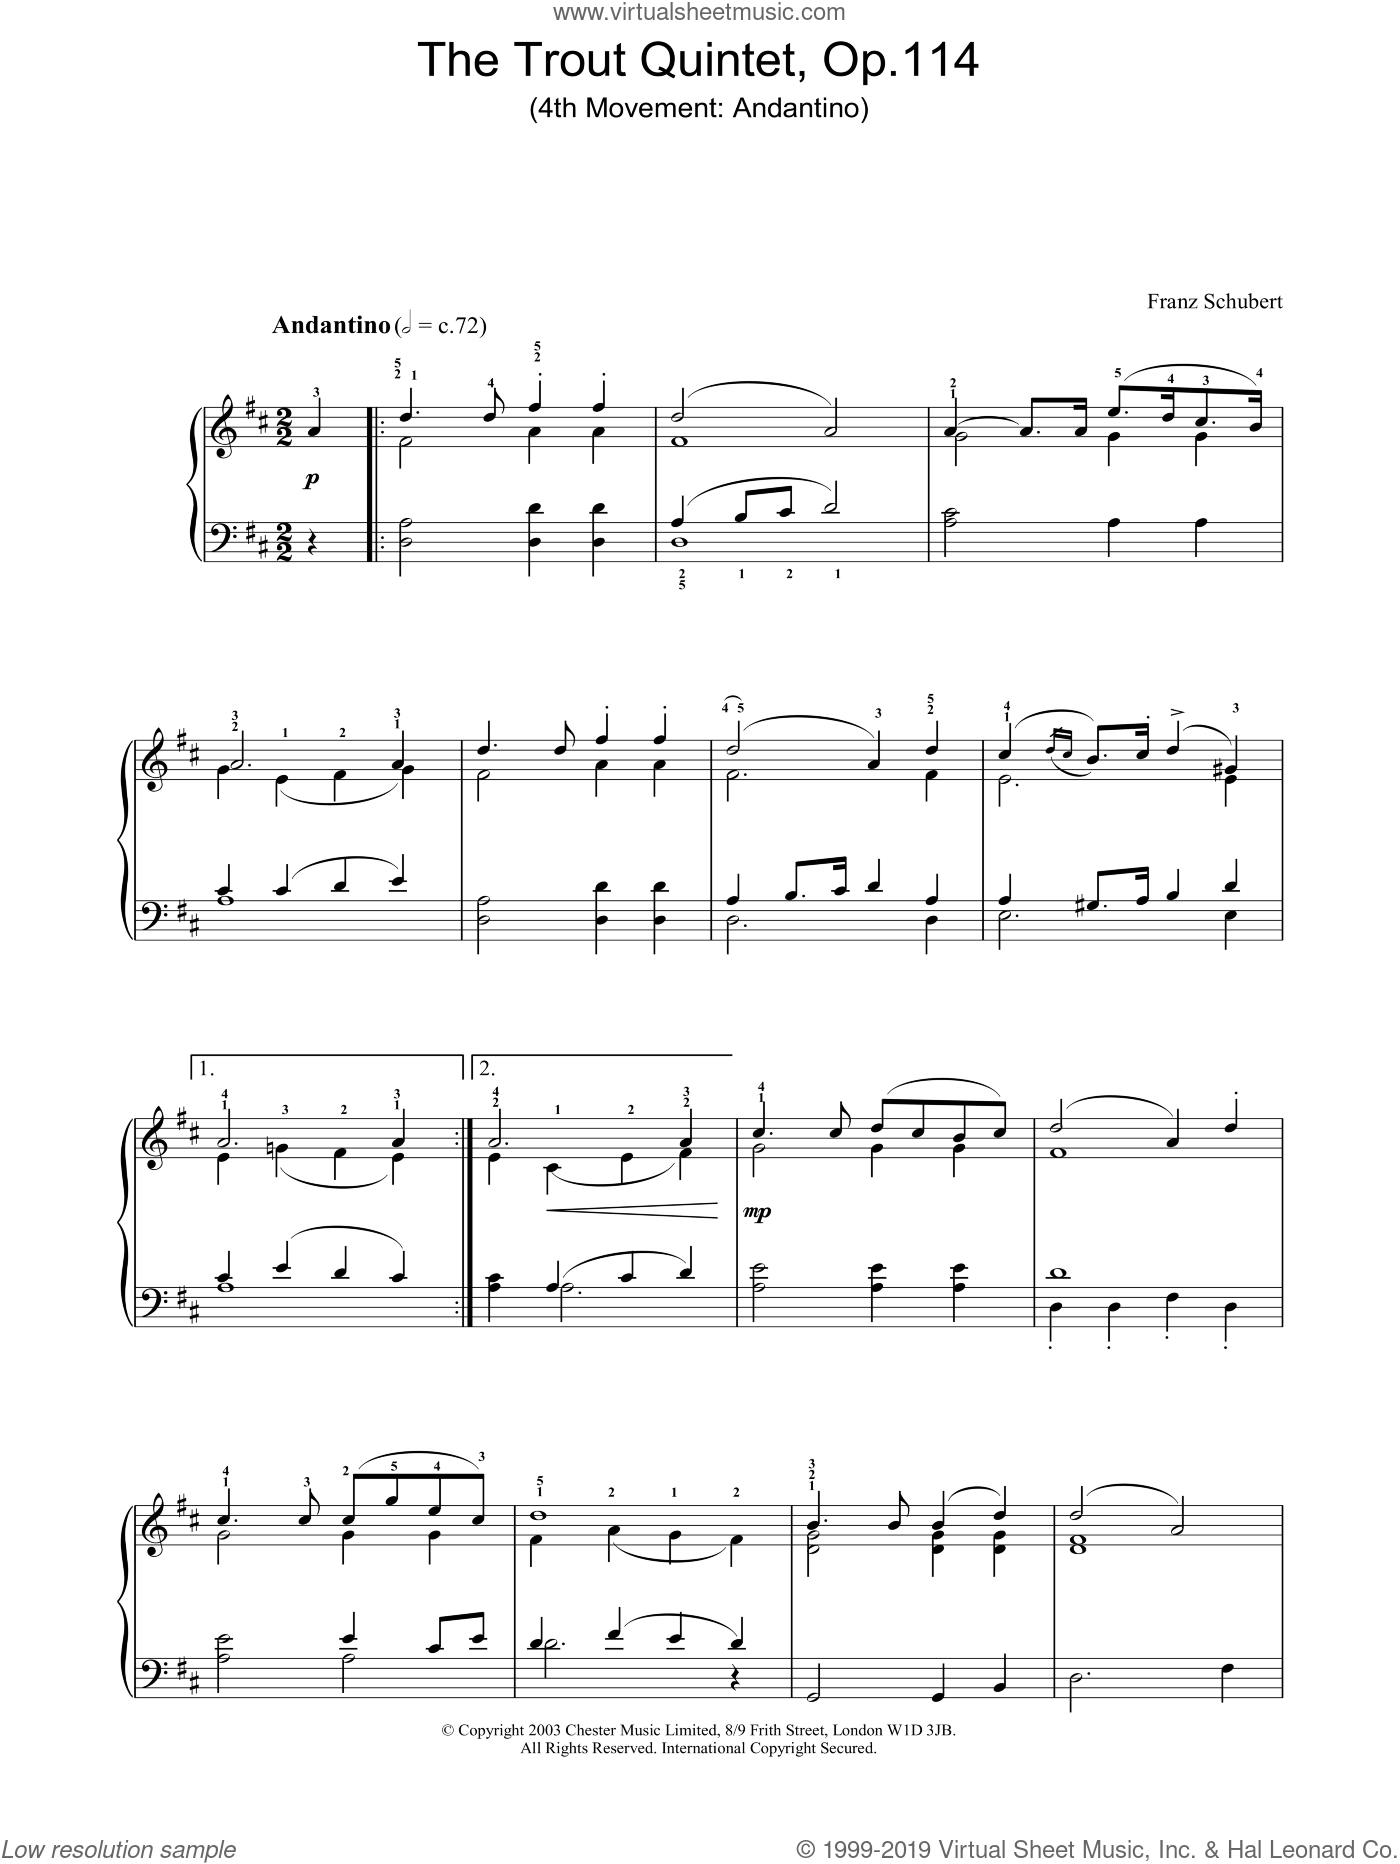 The Trout Quintet - 4th Movement: Andantino sheet music for piano solo by Franz Schubert, classical score, intermediate skill level